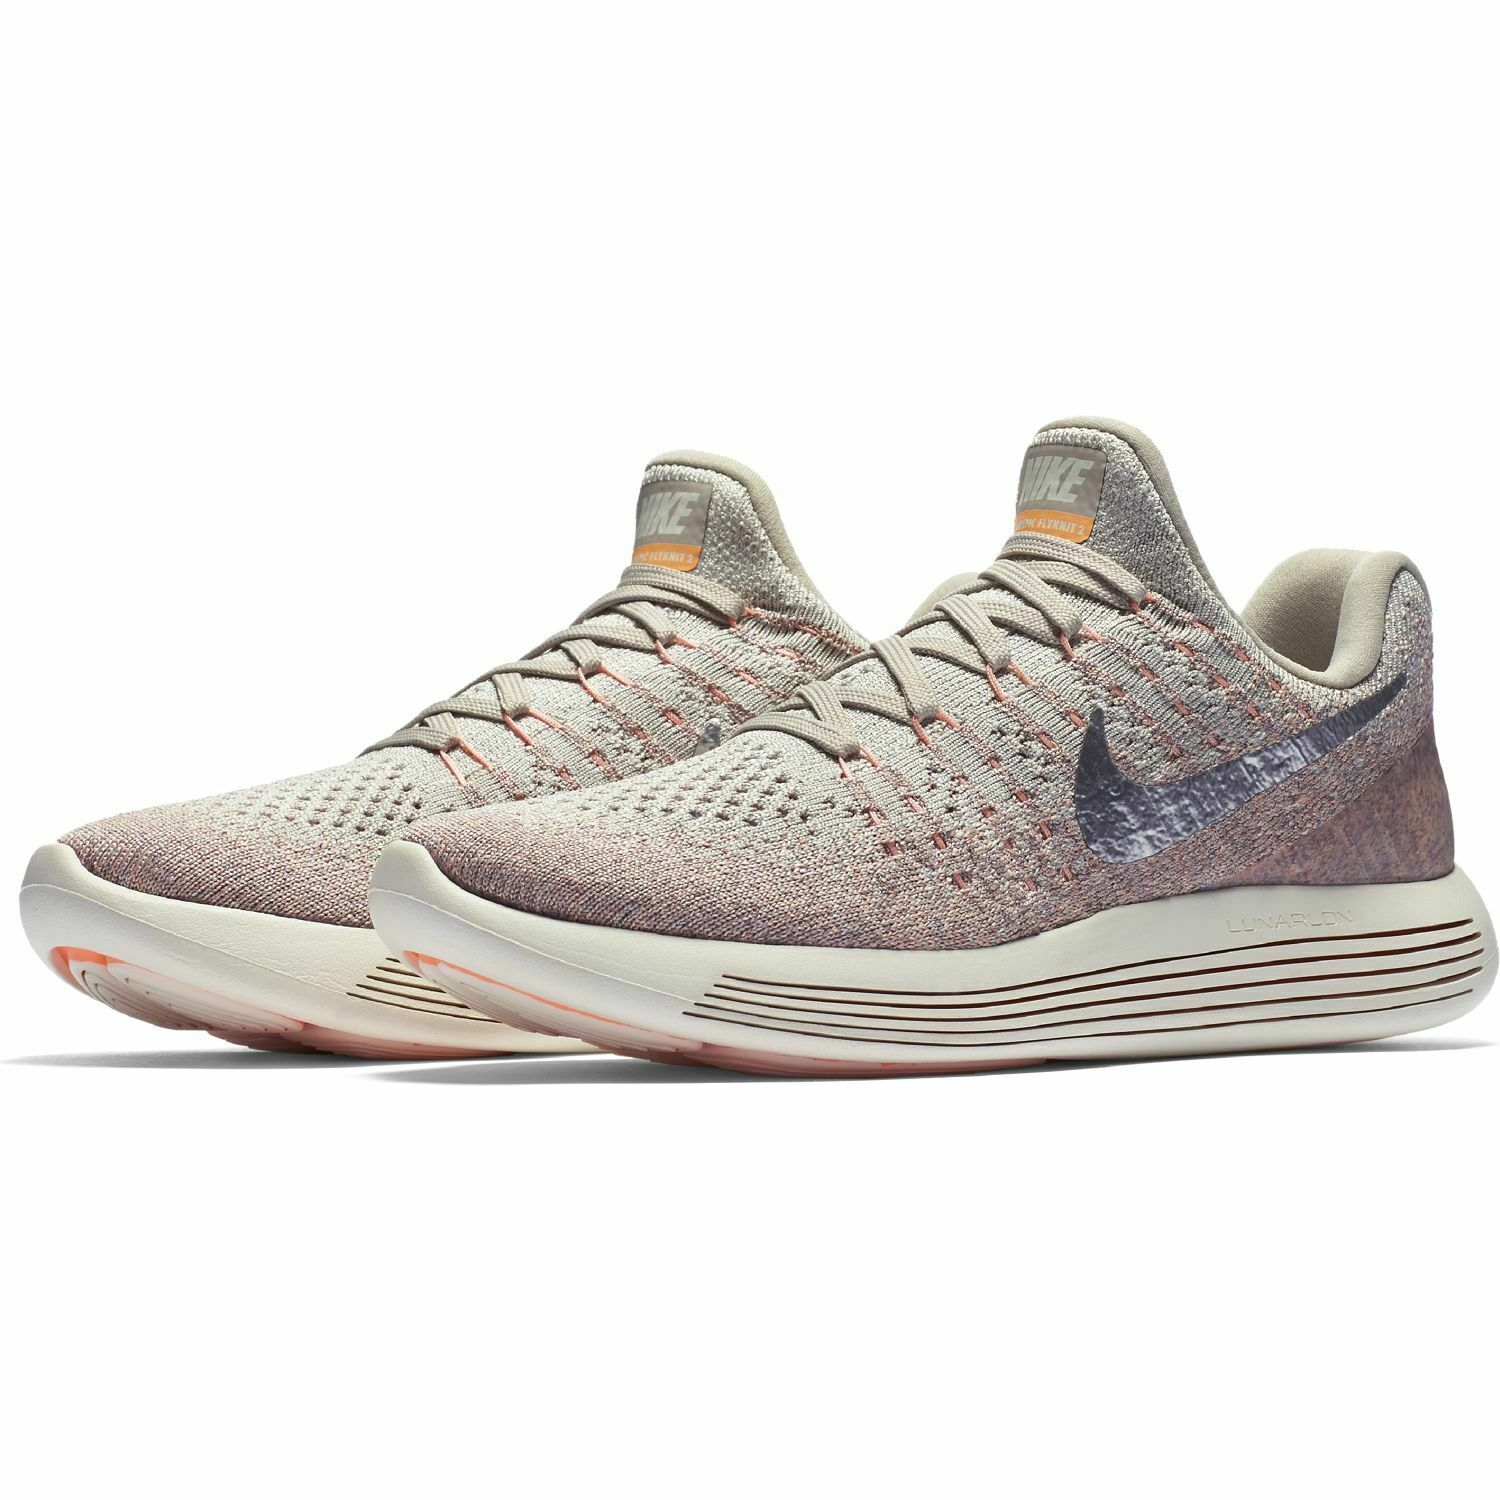 Nike Wmns Lunarepic Low Flyknit 2 Pale Grey 863780-005 Size 8.5 UK